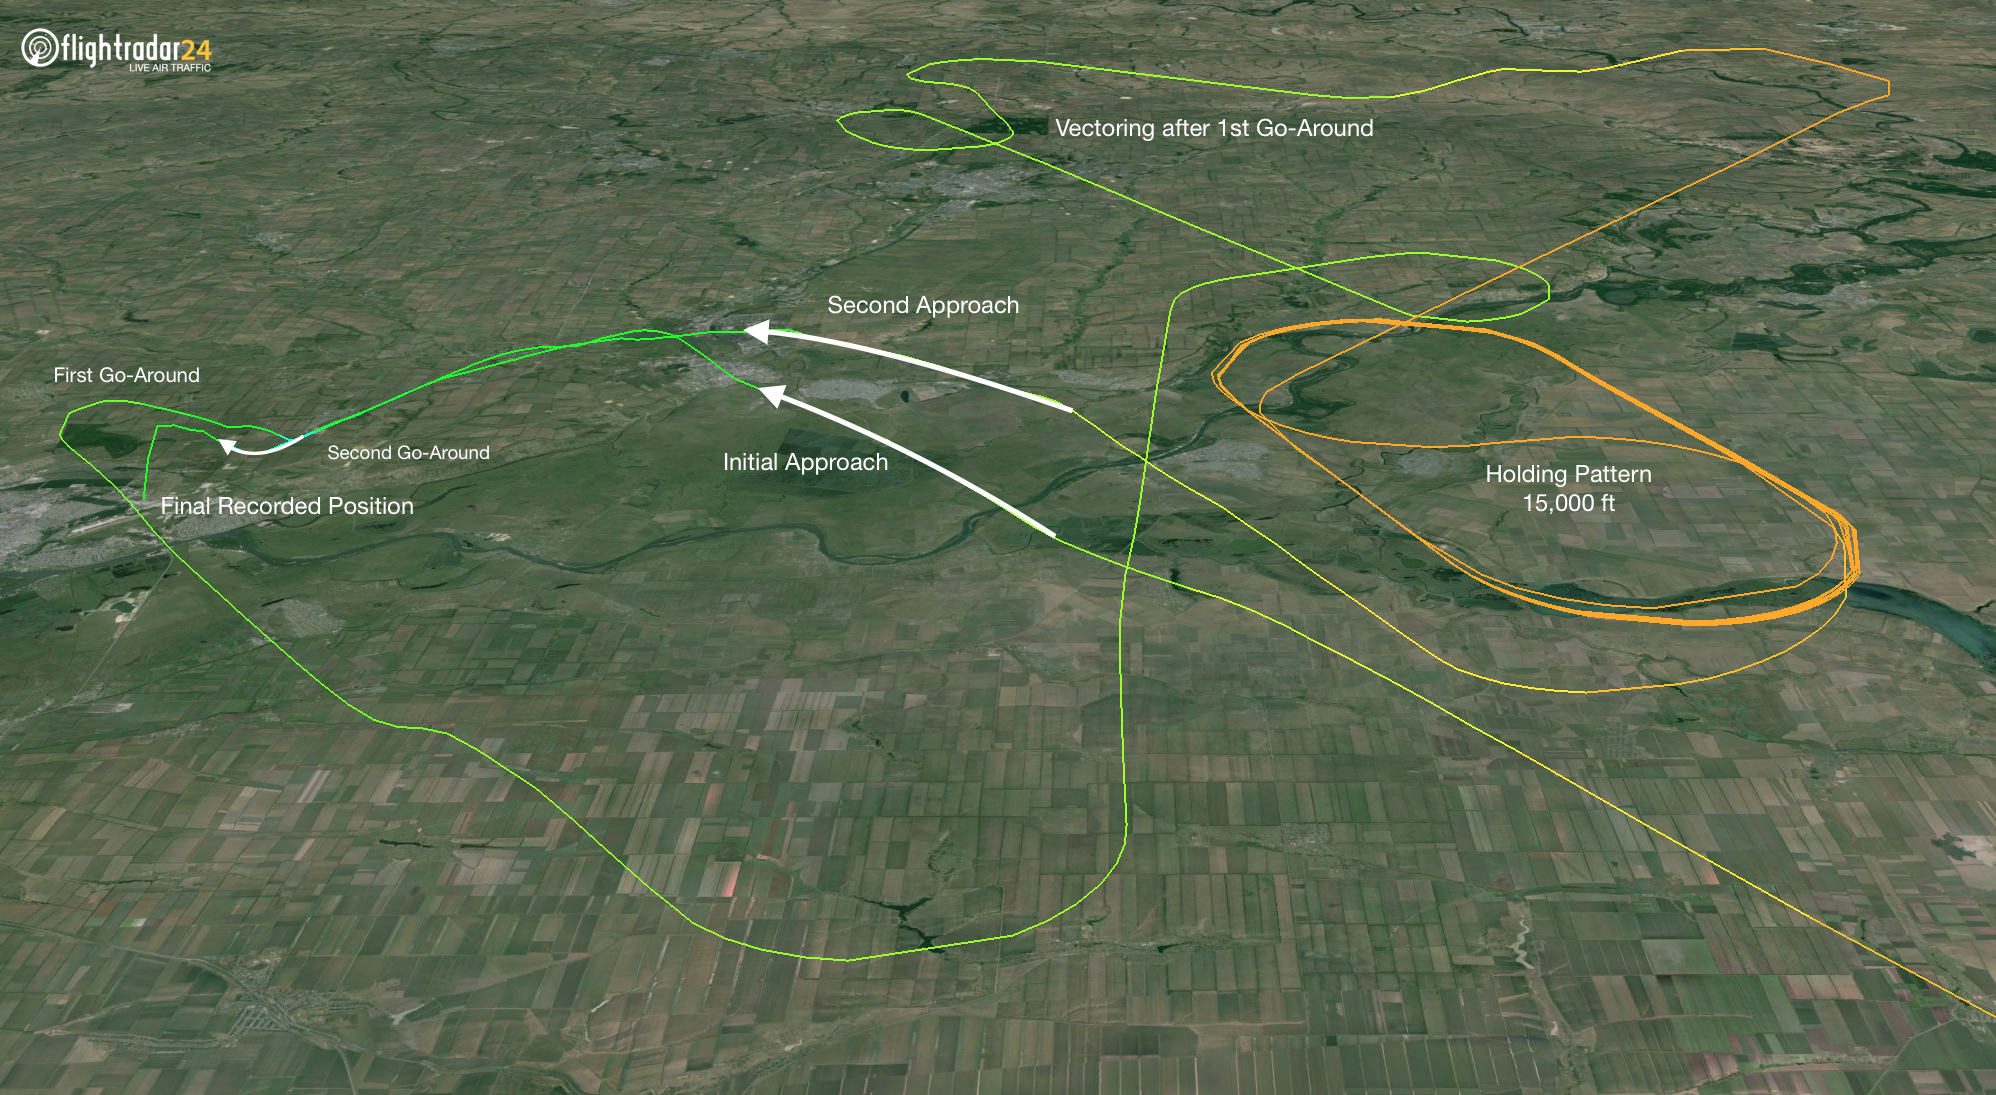 Annotated flight path of FZ981from first landing attempt to final recorded position.